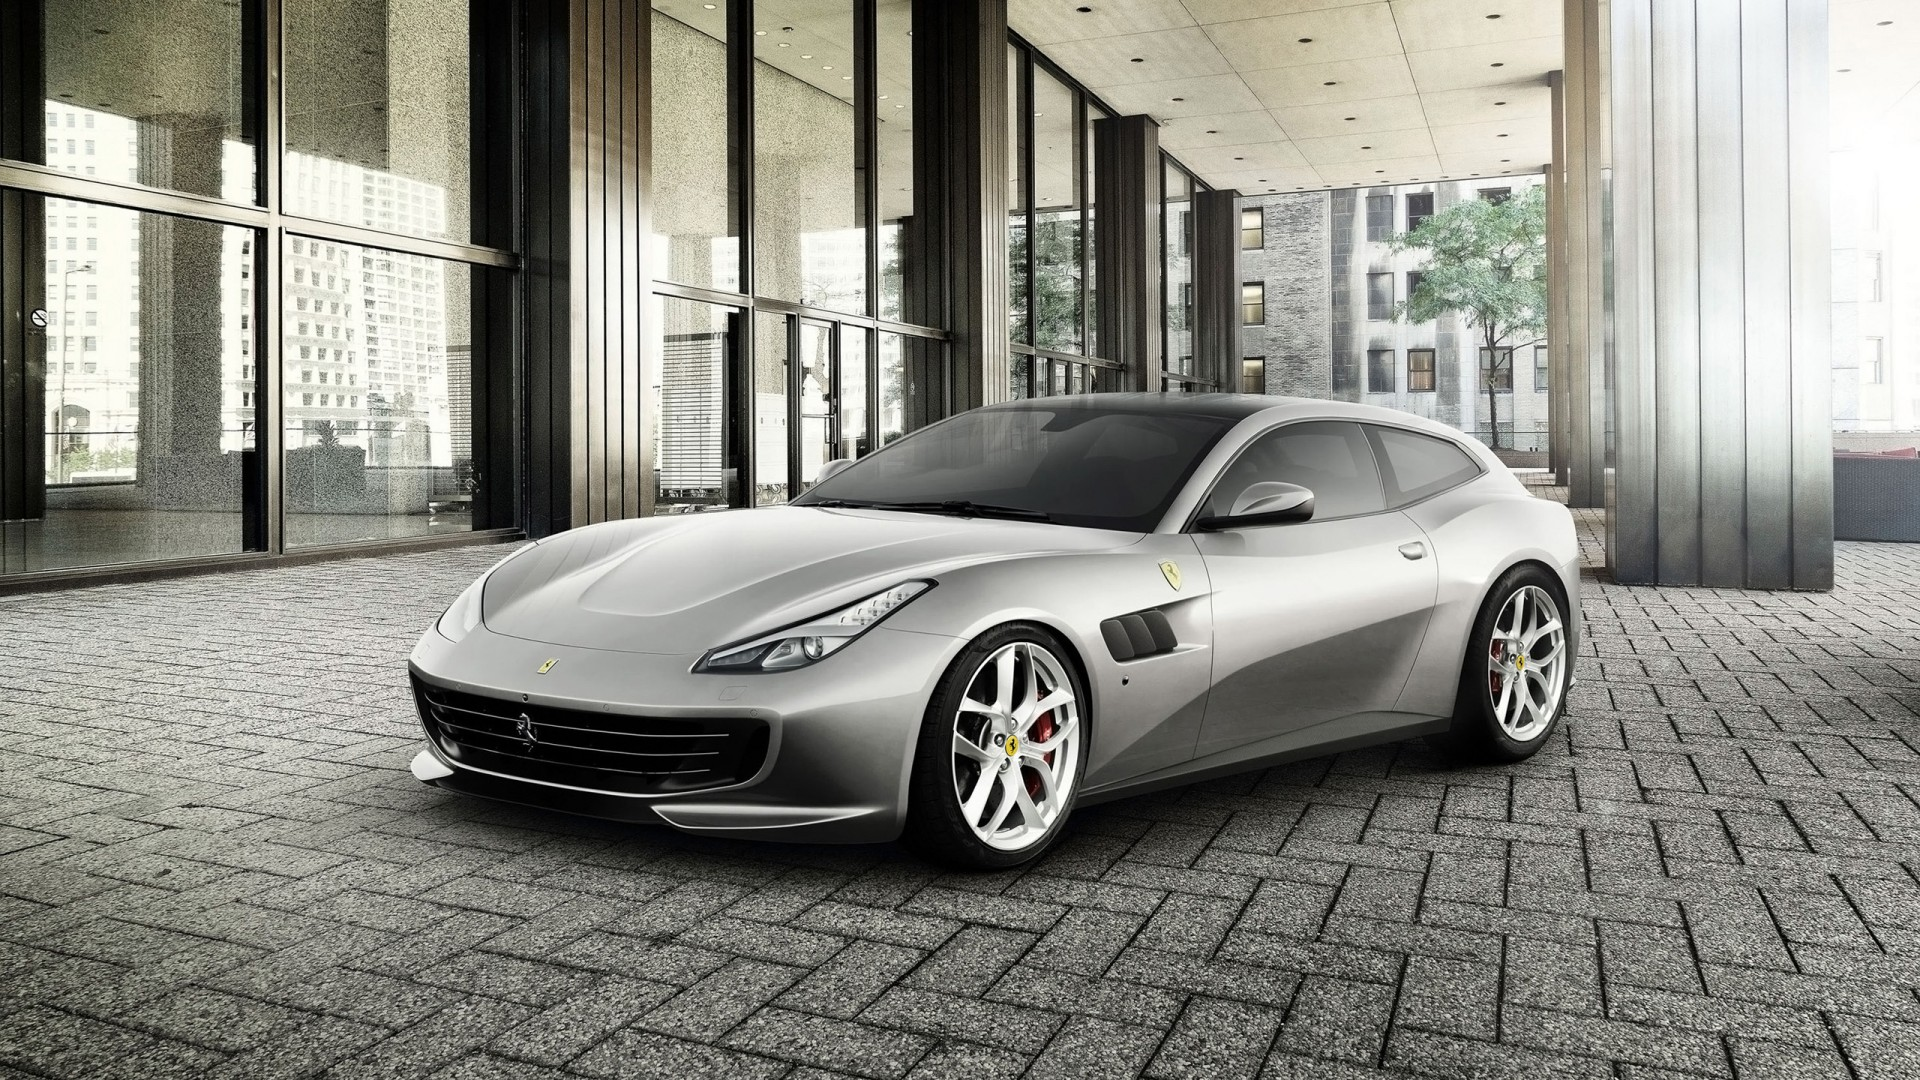 2017 Ferrari Gtc4lusso T 3 Wallpaper Hd Car Wallpapers